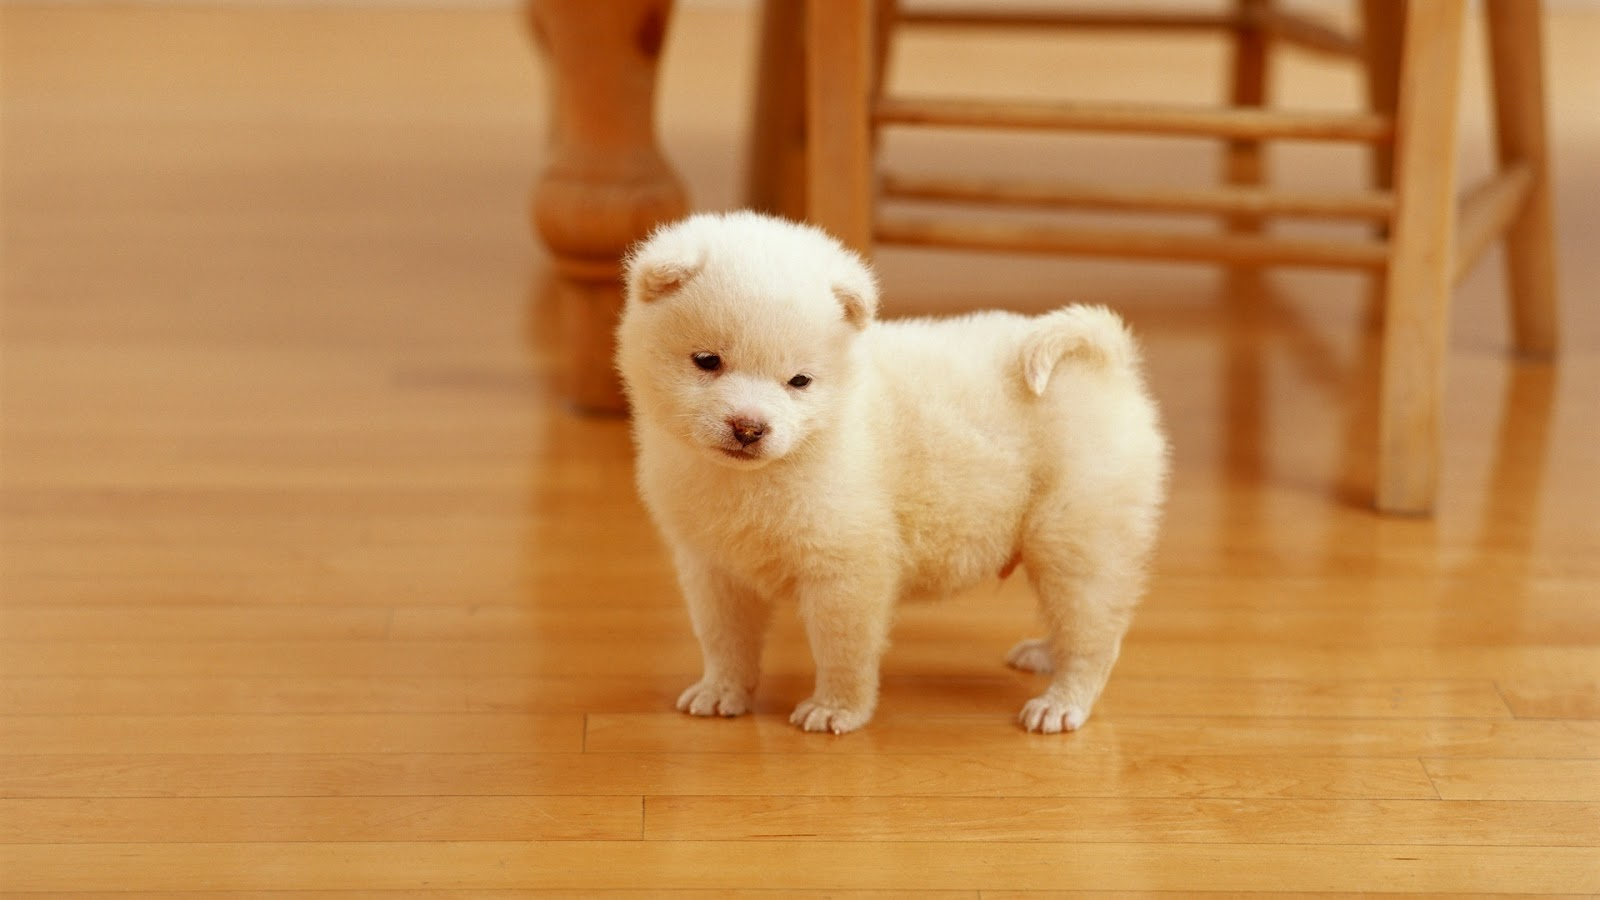 Cute White Puppy Desktop Wallpaper Windows 8 HD Wallpapers 1600x900